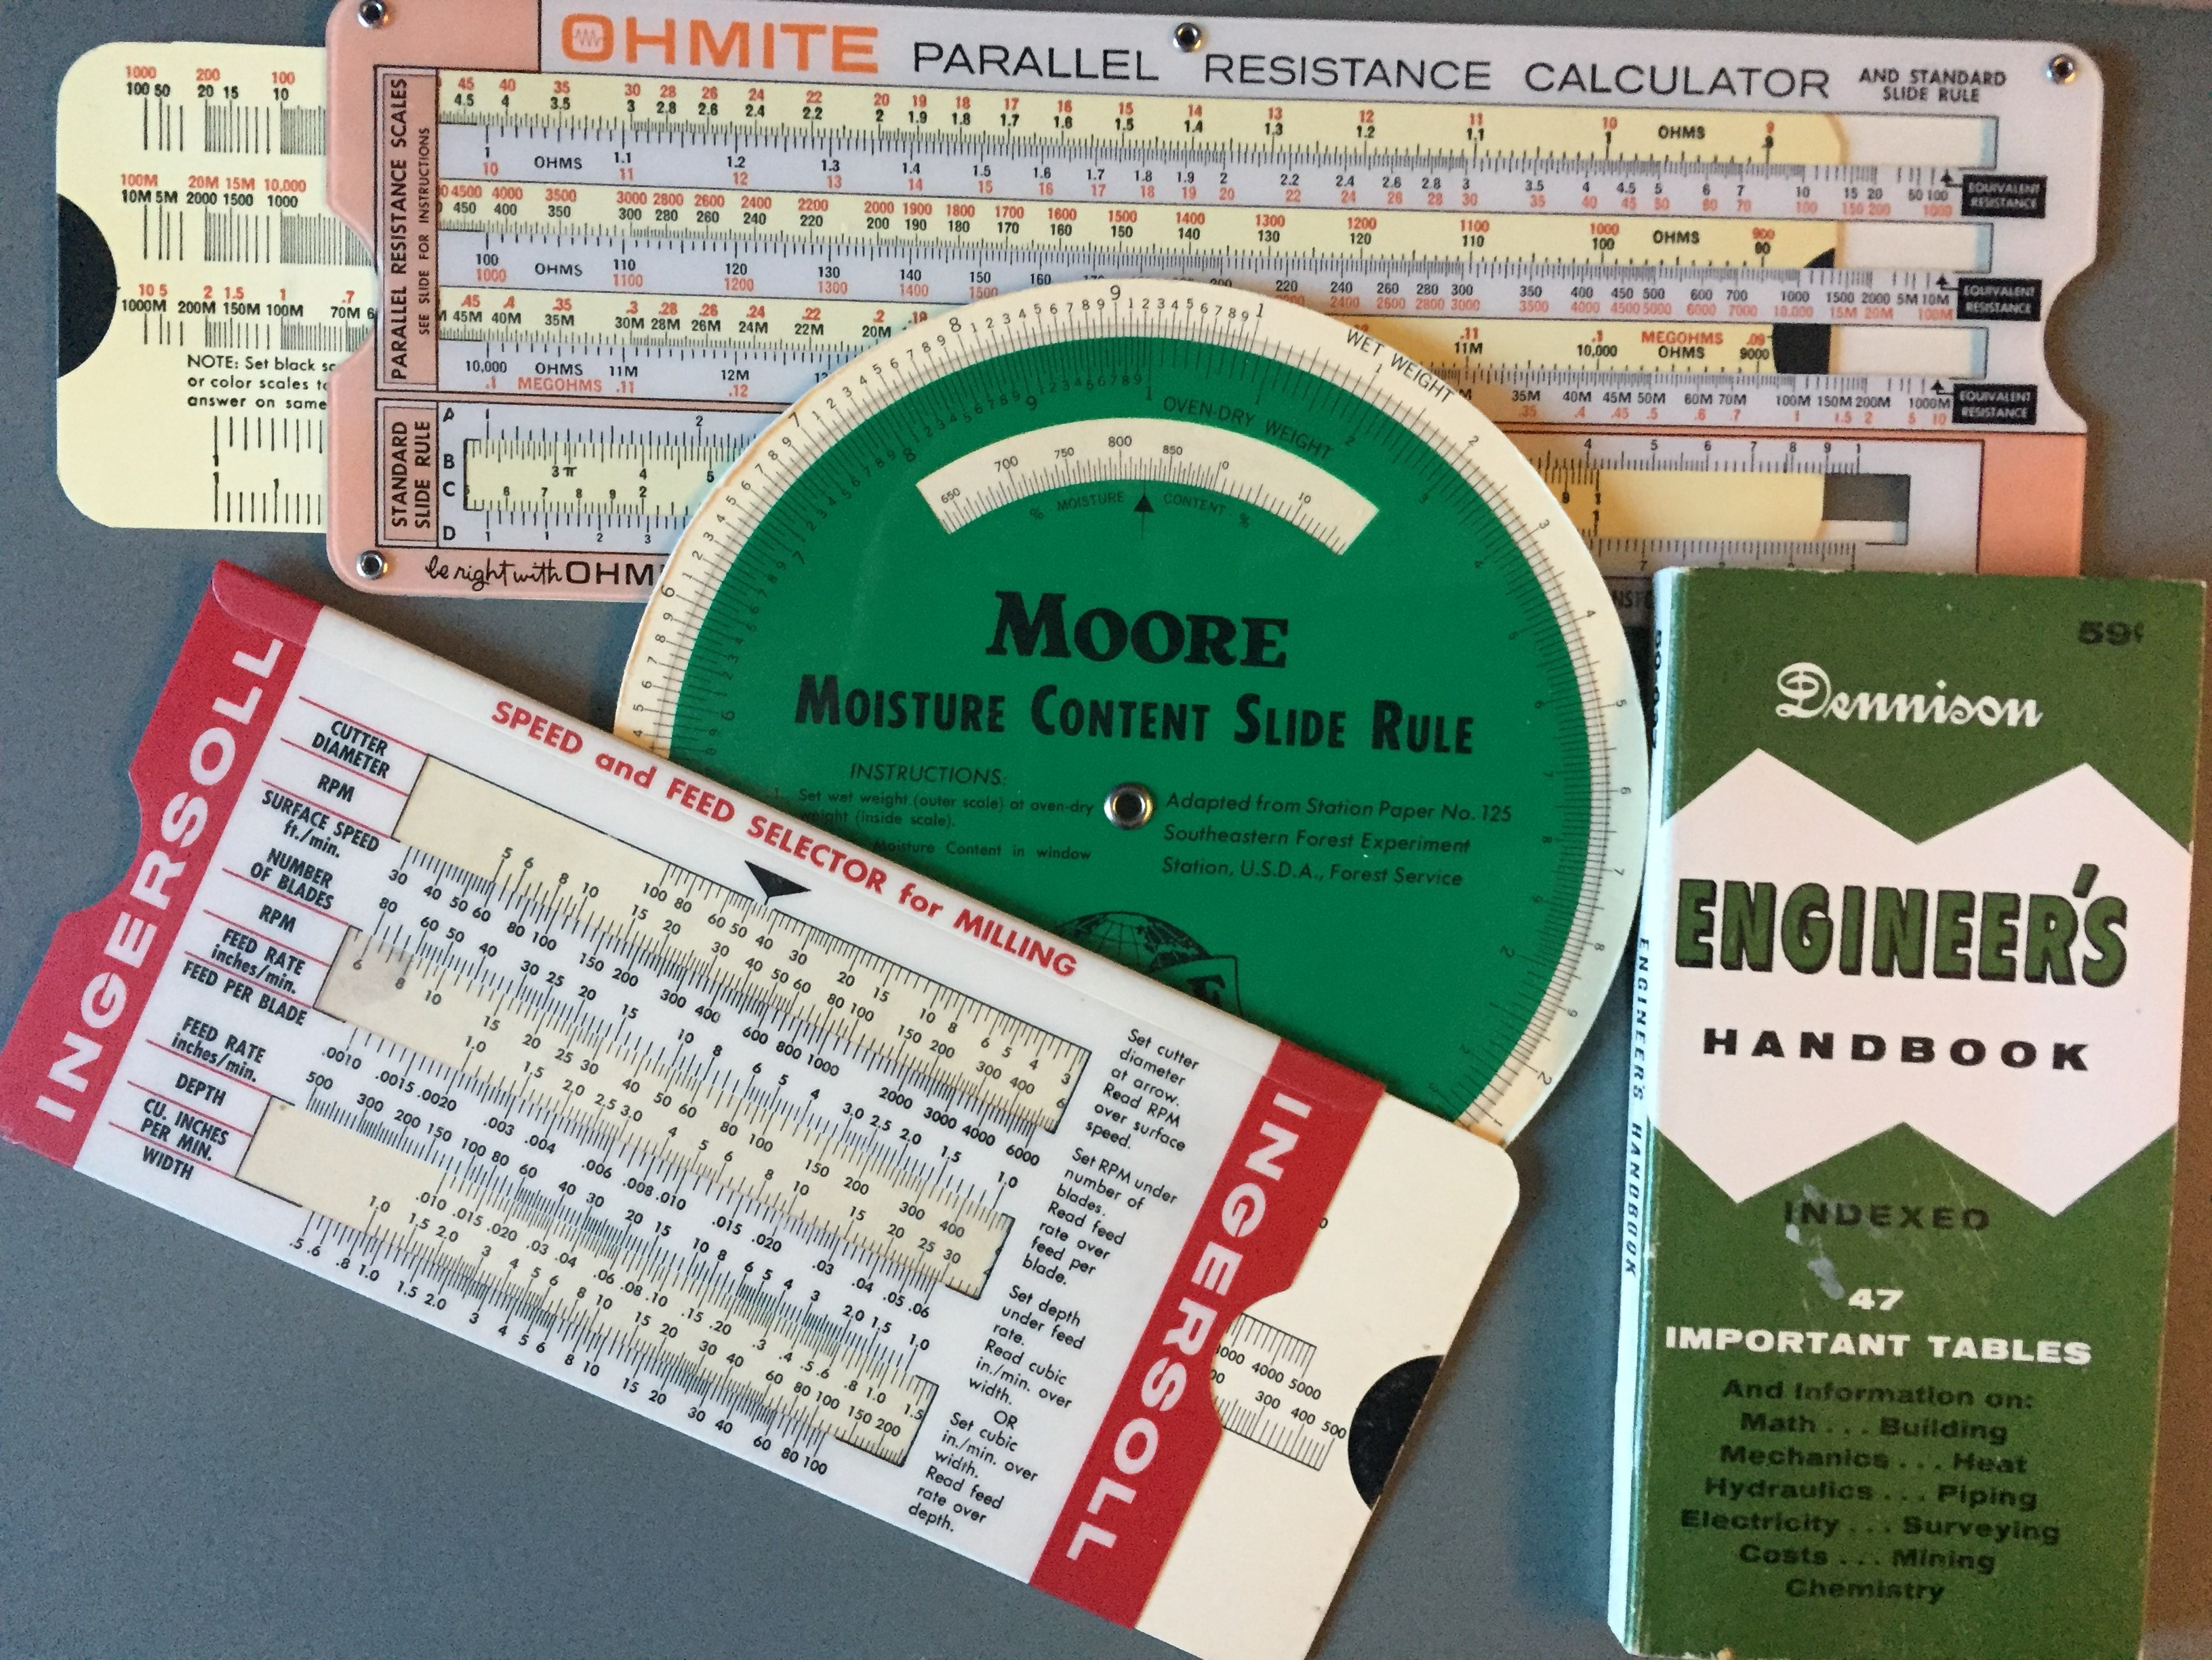 paper slide rules and pocket handbook for data